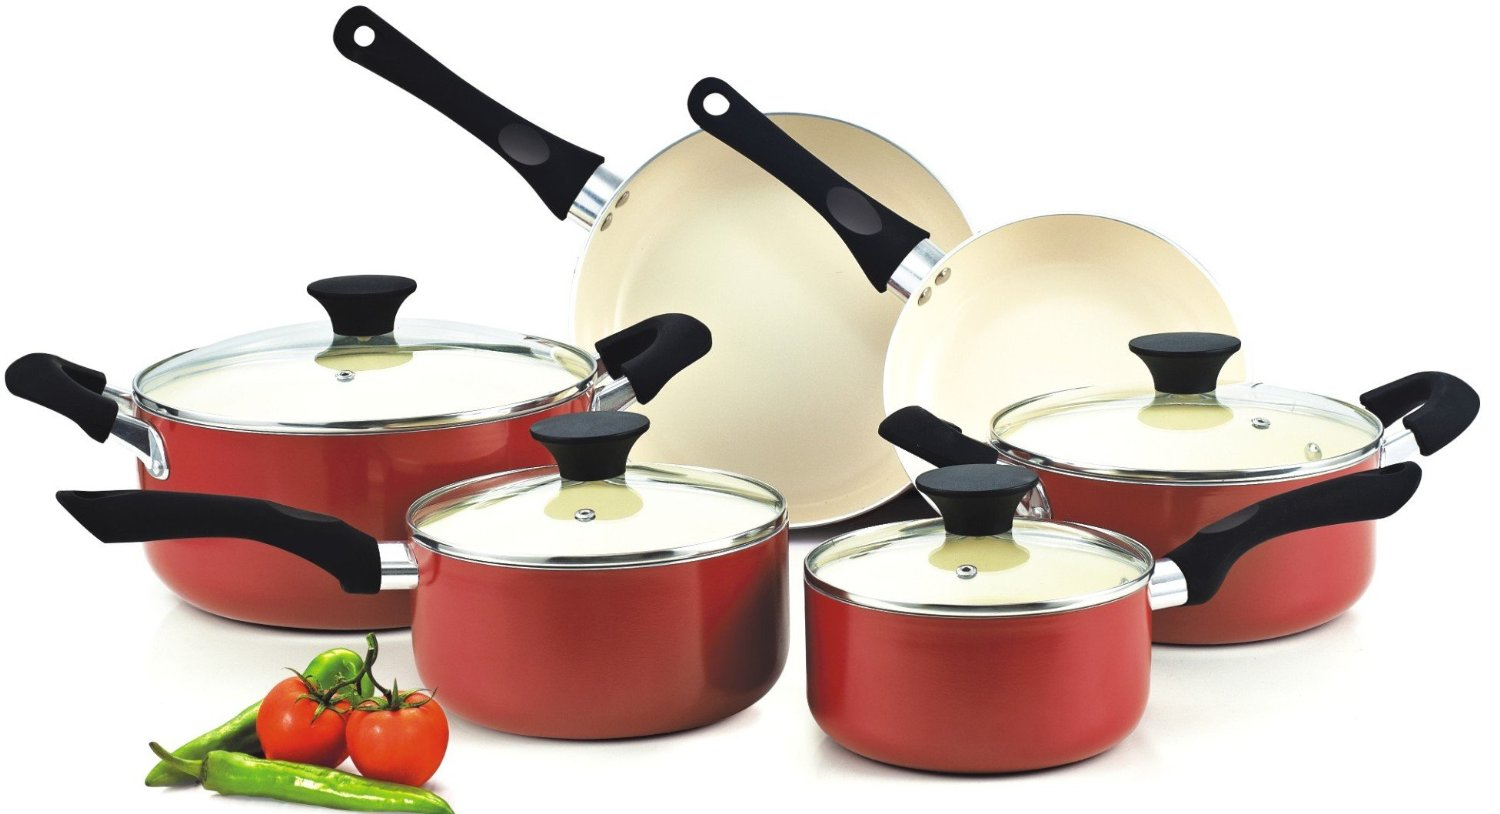 Looking for best cookware set for your kitchen perfect cookware is needed to cook any item properly as a cook lover you know better that every pot and pan